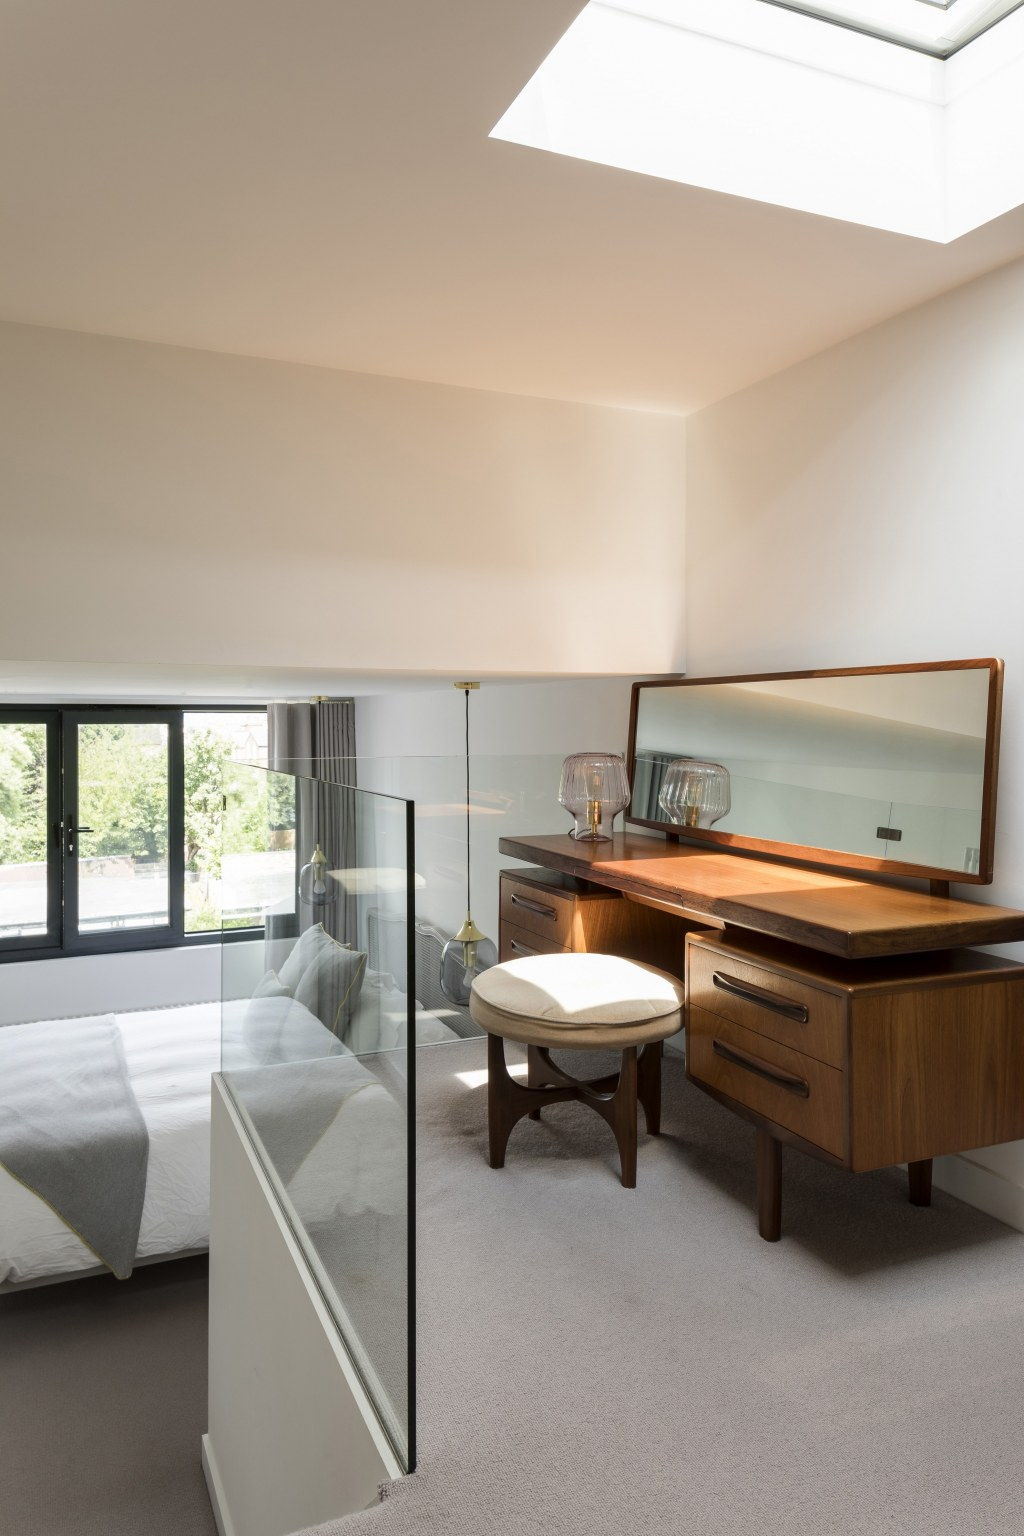 DULWICH LOFT CONVERSION / Dulwich Loft Conversion Interior View 2